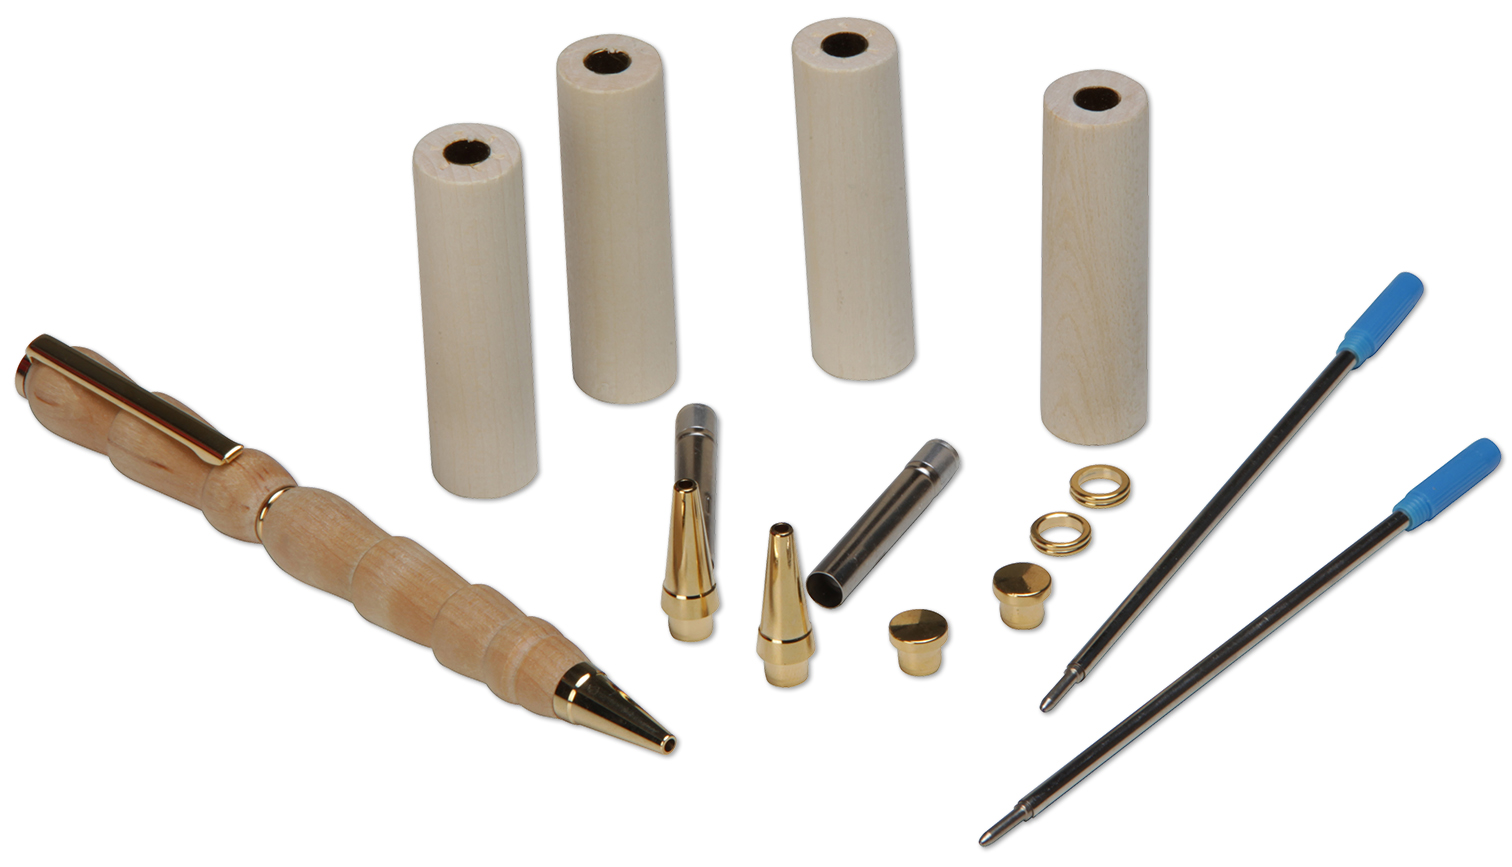 Basic equipment: Refill Kit for 3 Wooden Pens